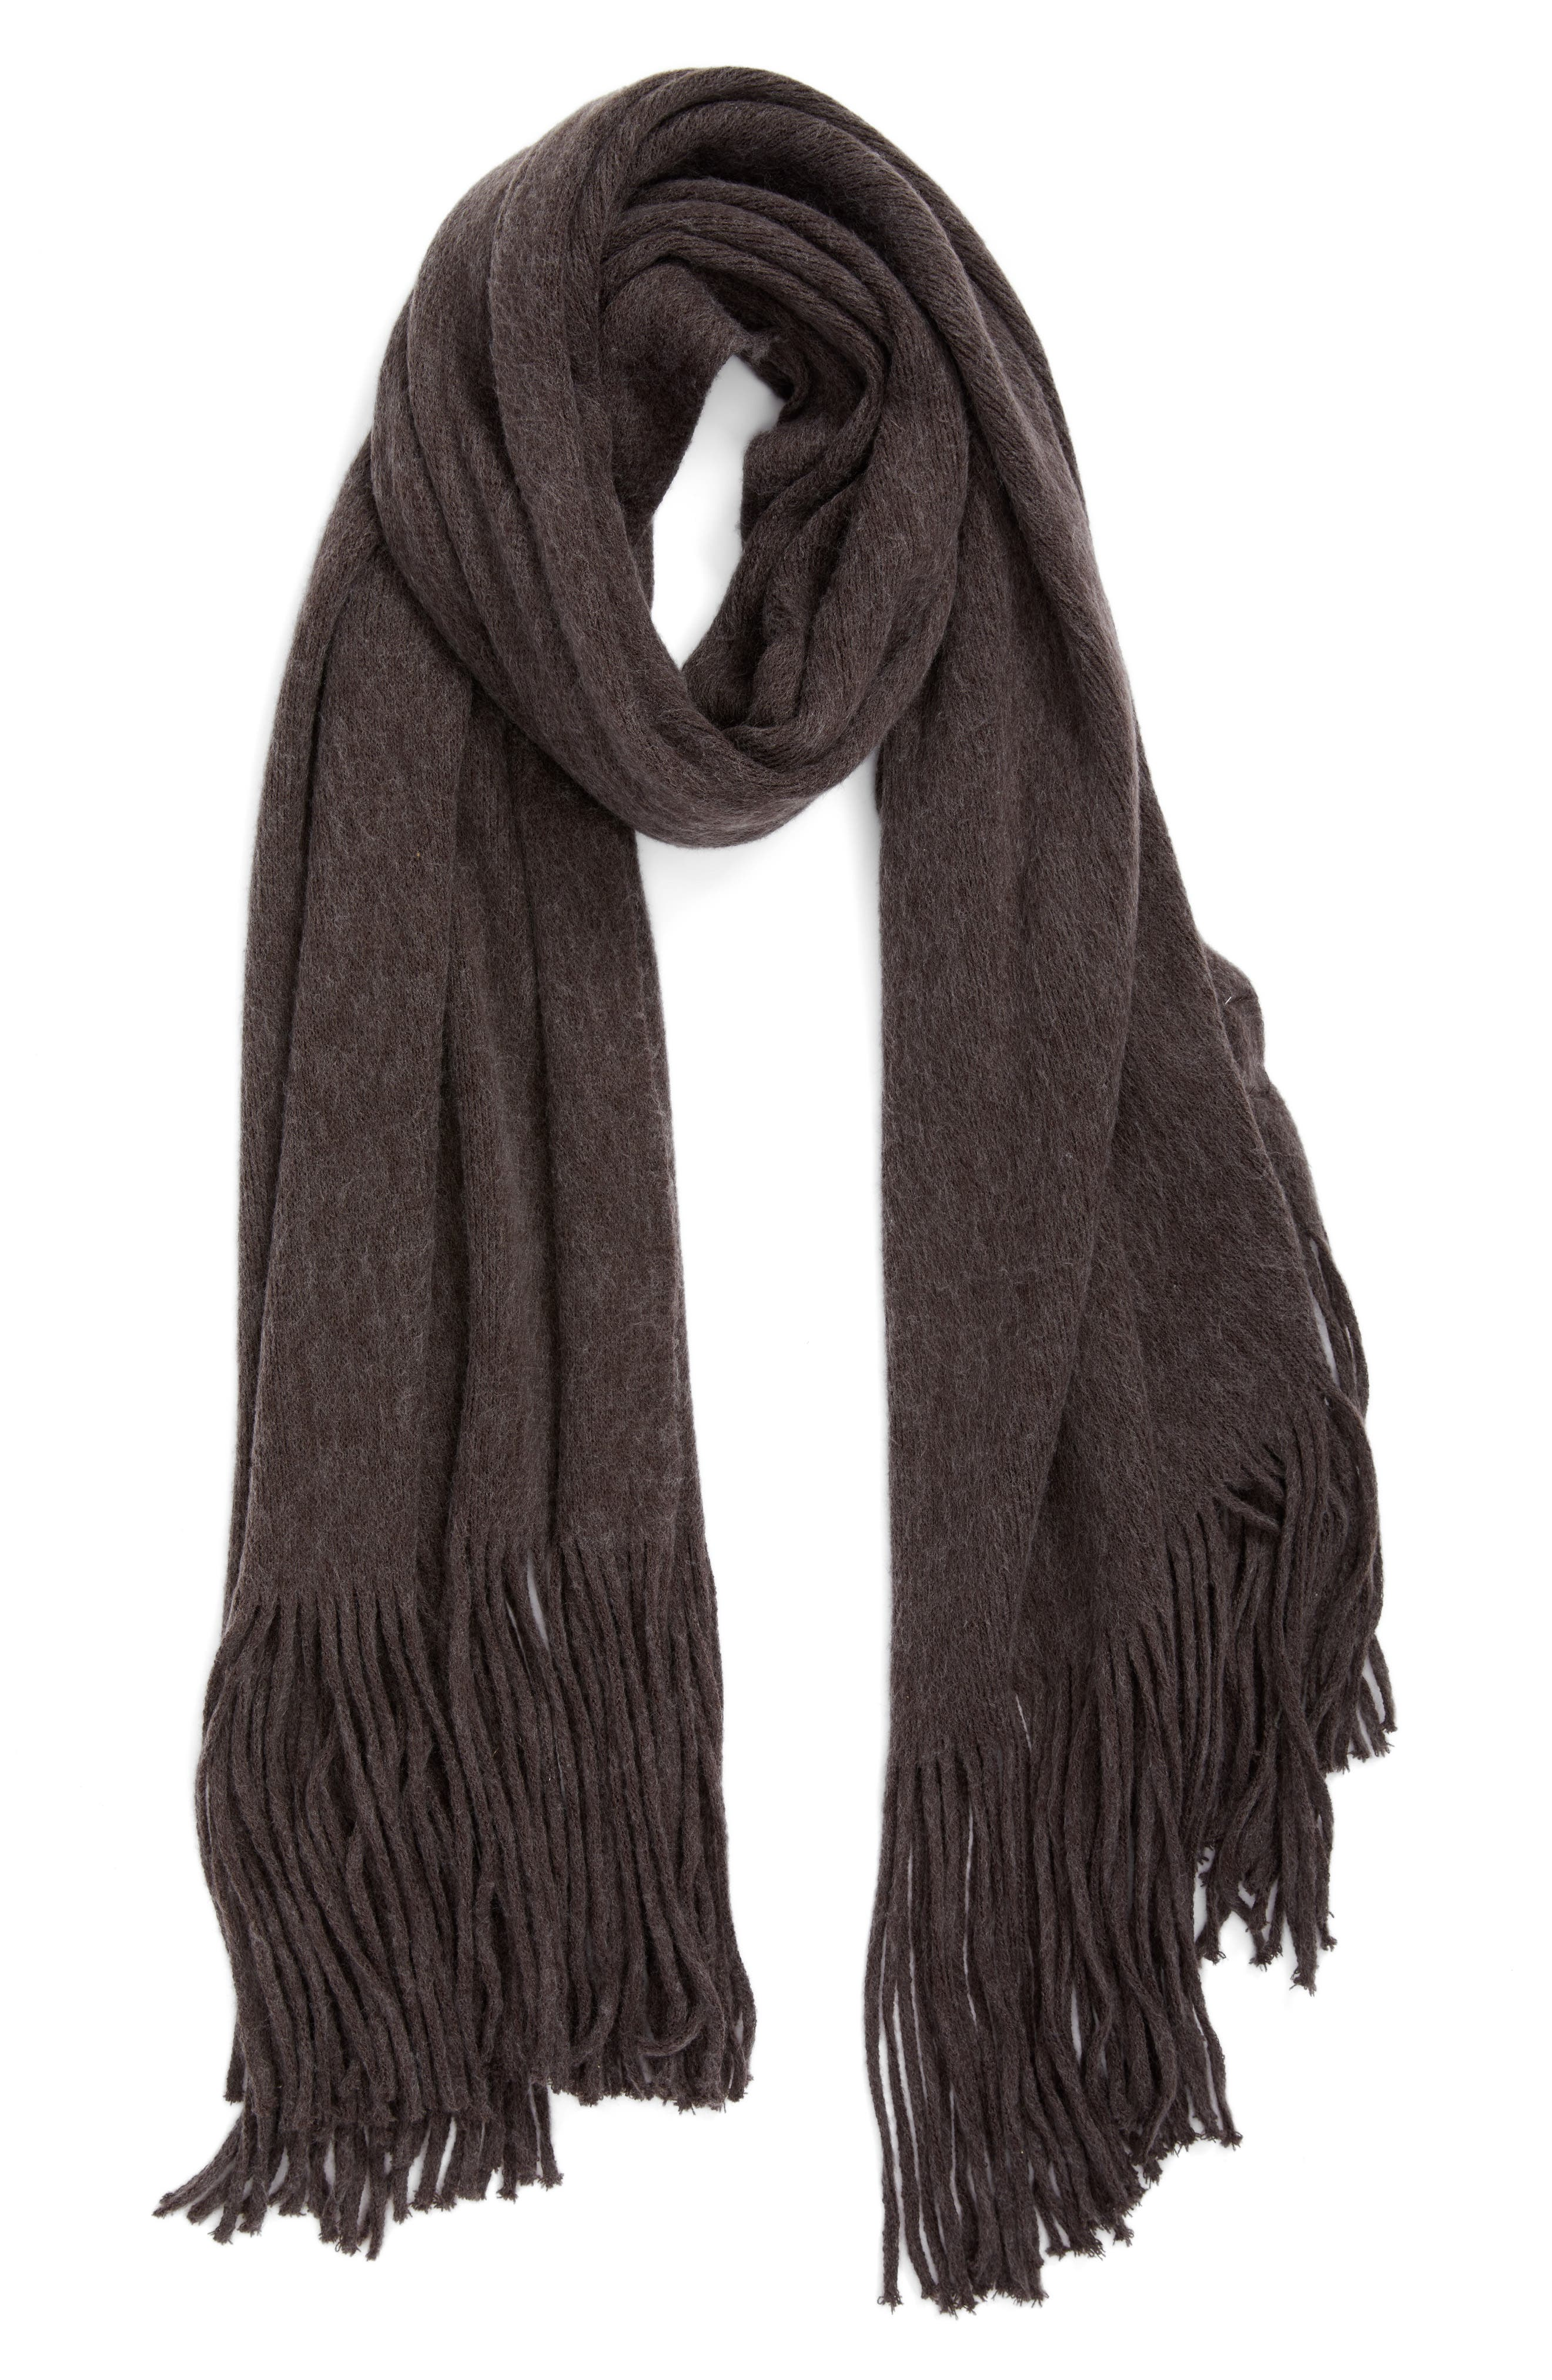 Kolby Brushed Scarf,                             Alternate thumbnail 2, color,                             021